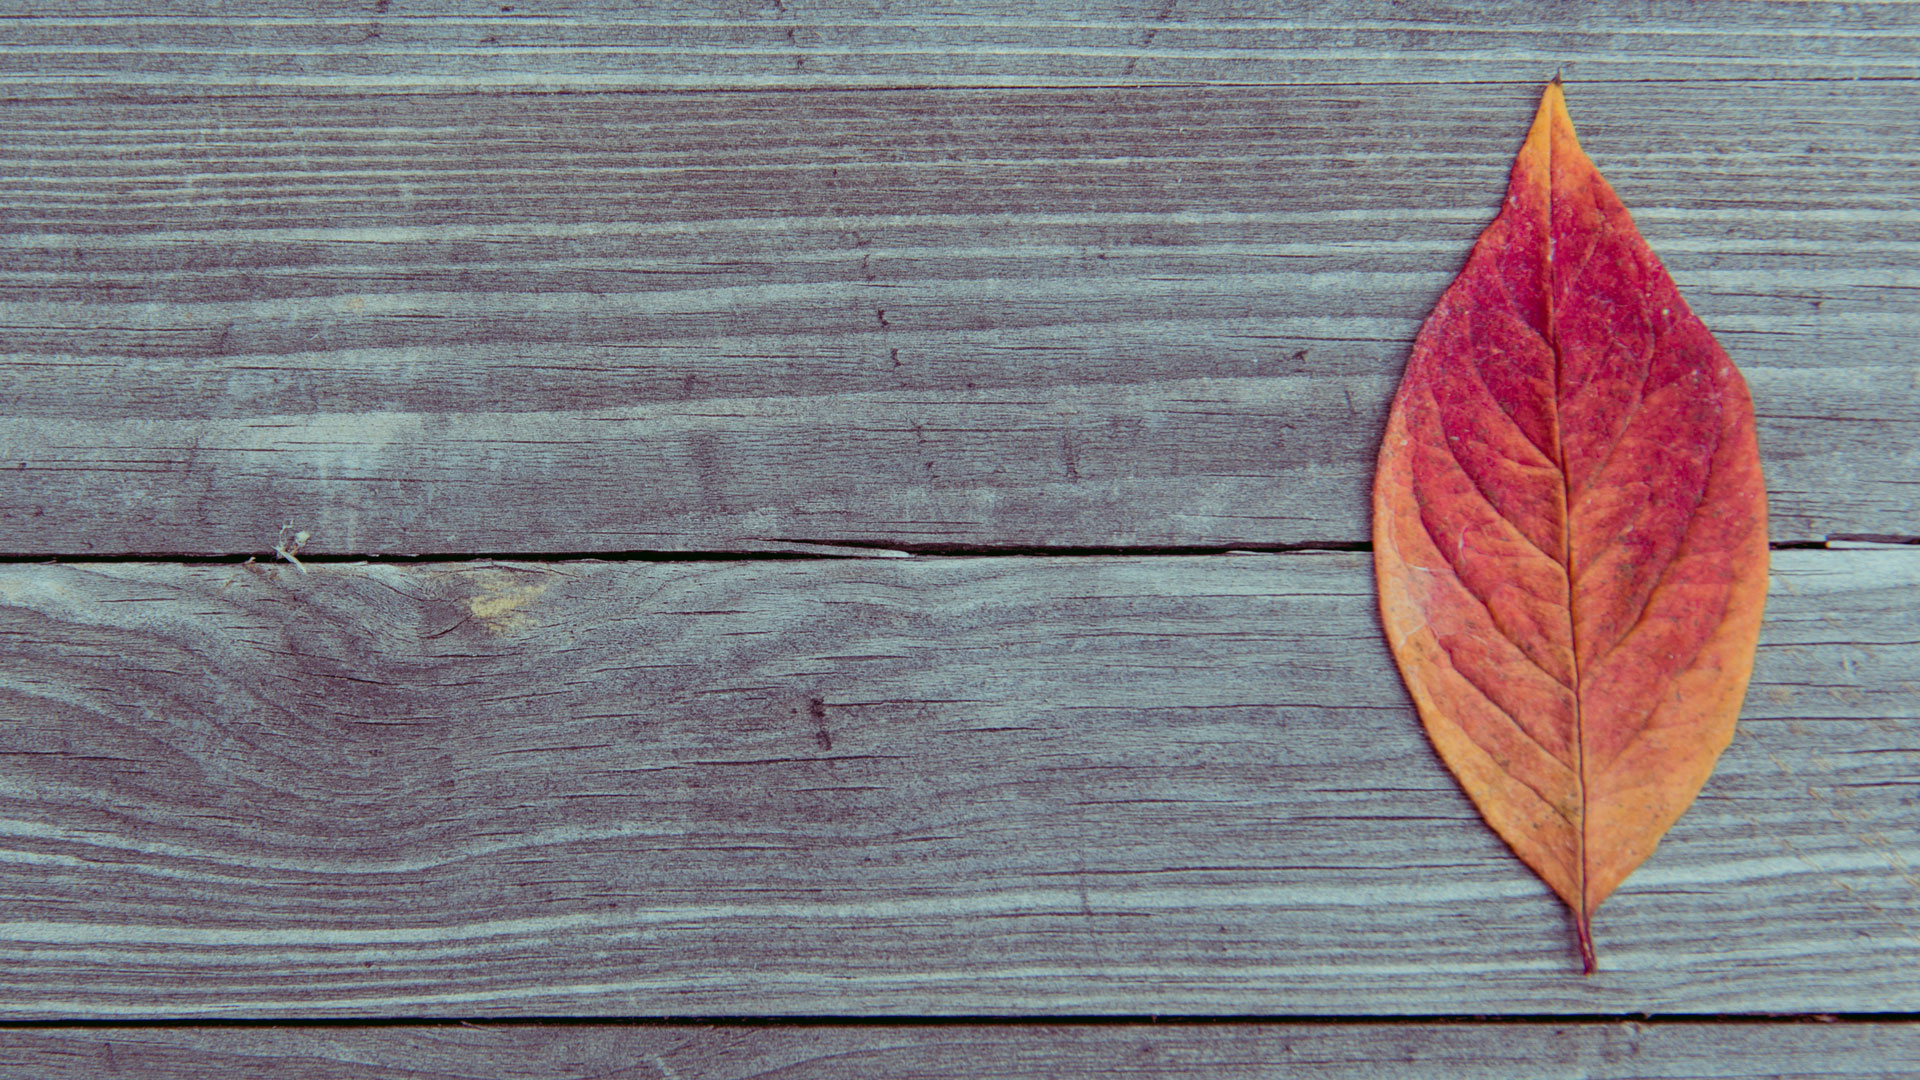 wooden-table-background